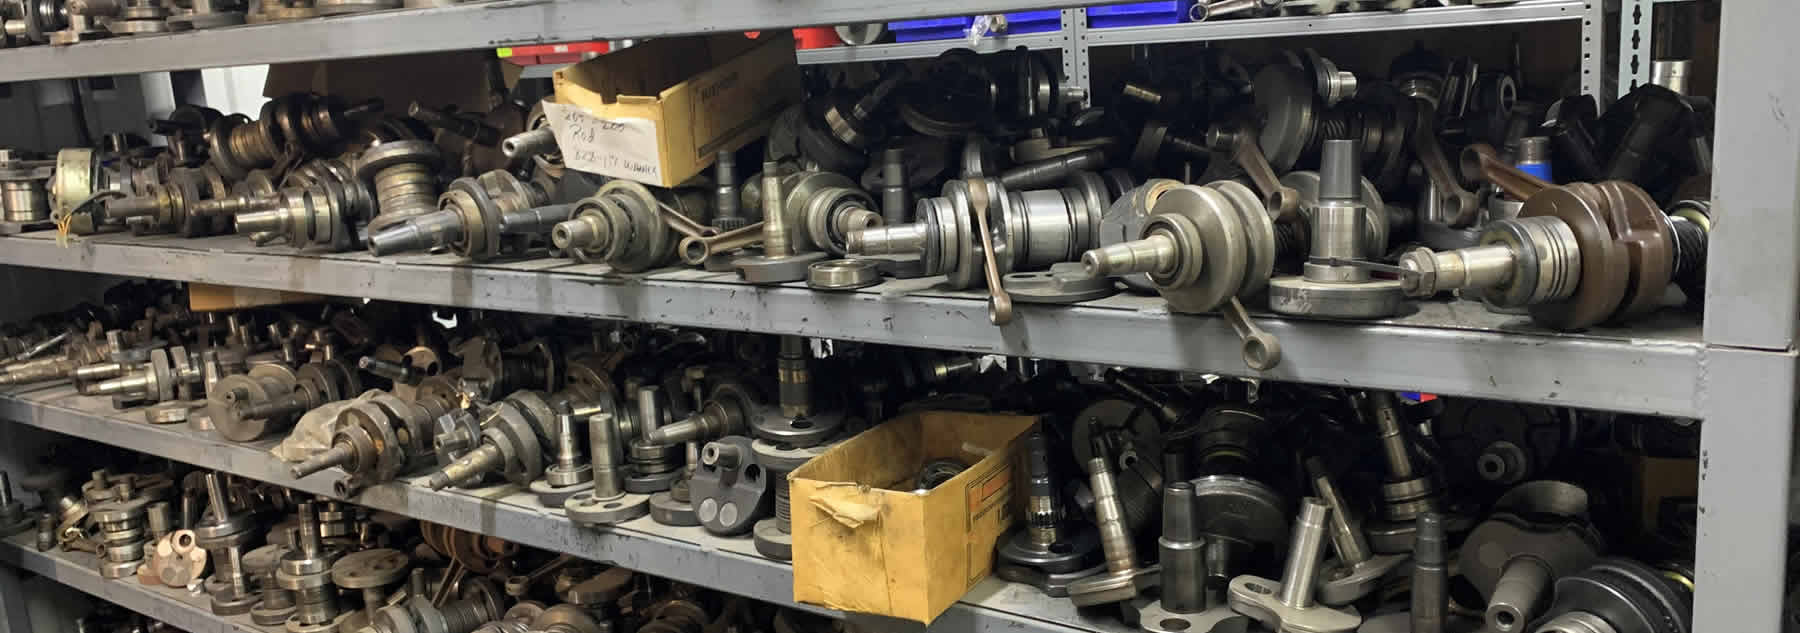 Contact Northern Crankshafts to find out about our crankshaft services.